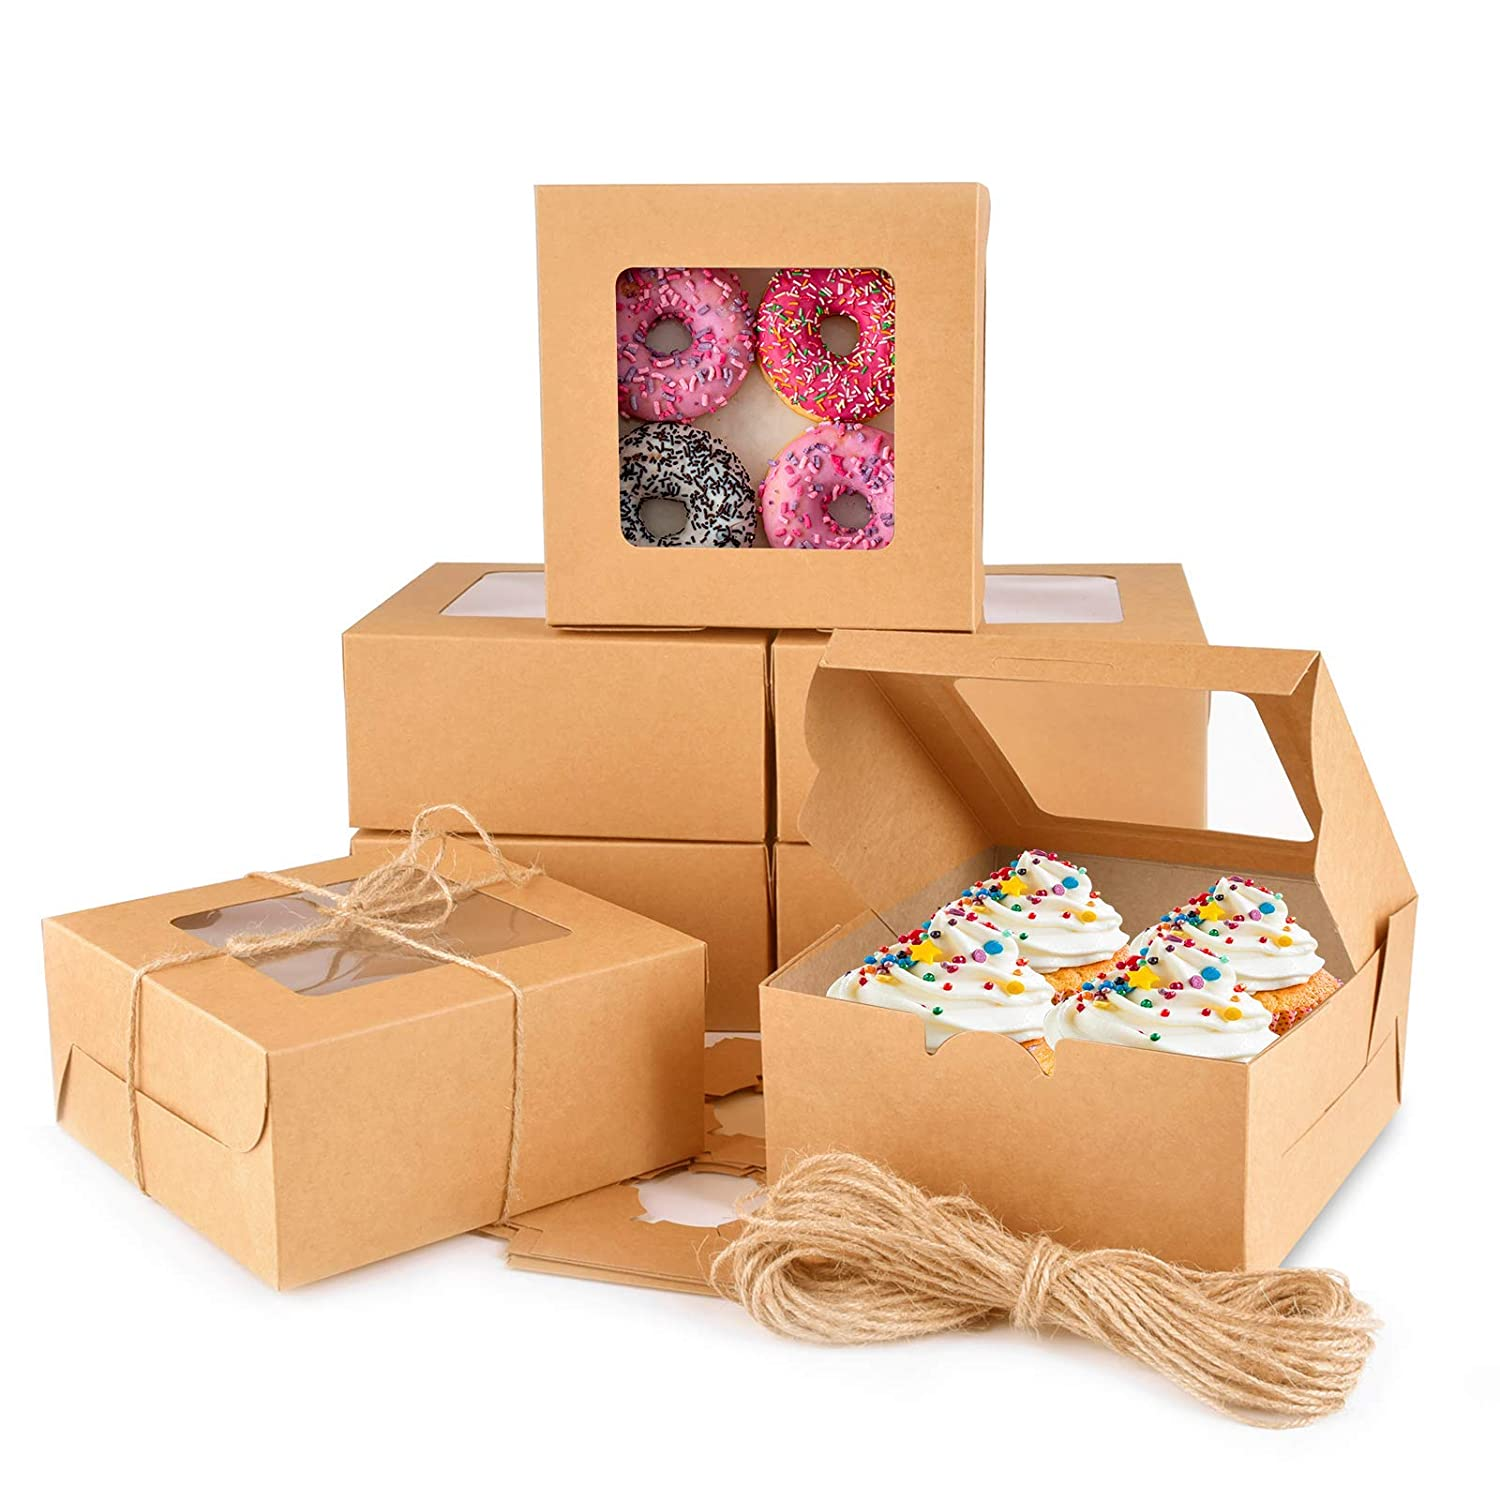 Cake Boxes 6x6x3 Inch, 24 pcs Brown Kraft Bakery Boxes with Window, Cupcakes Box for Pastries, Brown Bakery Boxes for Muffins, Donuts, and Pastries